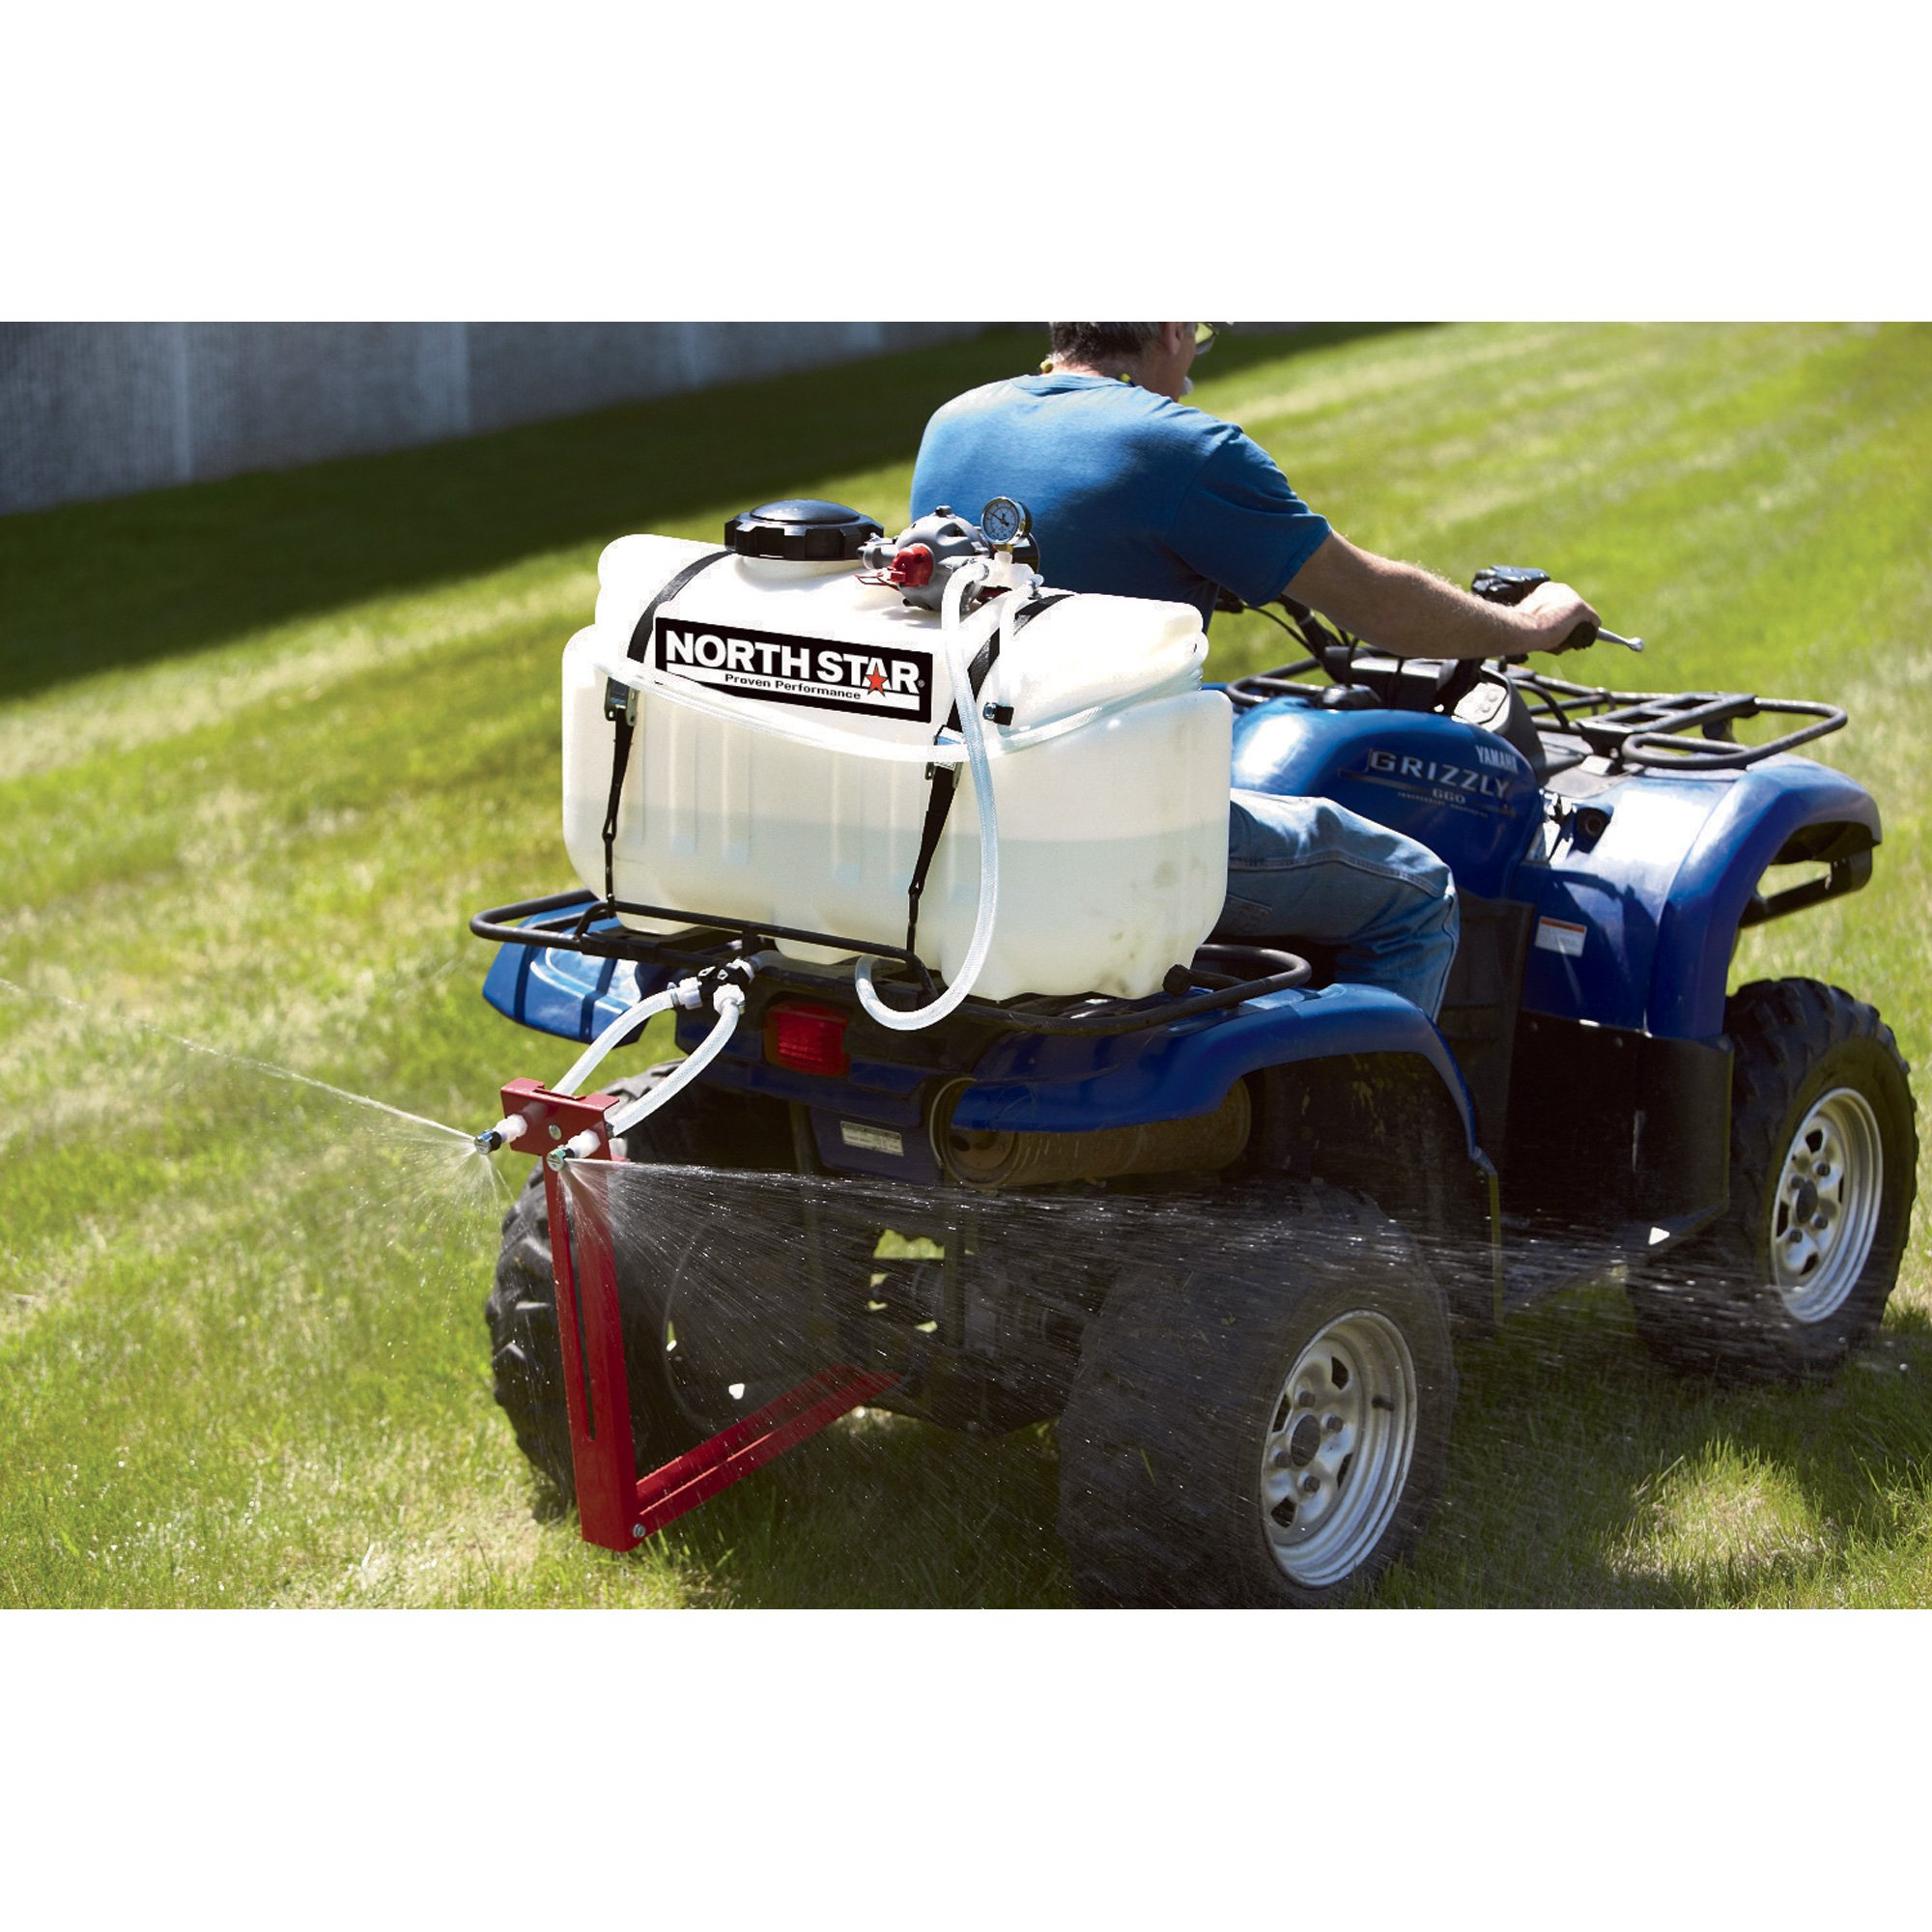 NorthStar ATV Boomless Broadcast and Spot Sprayer - 26 Gallons, 5.5 GPM, 12 Volts